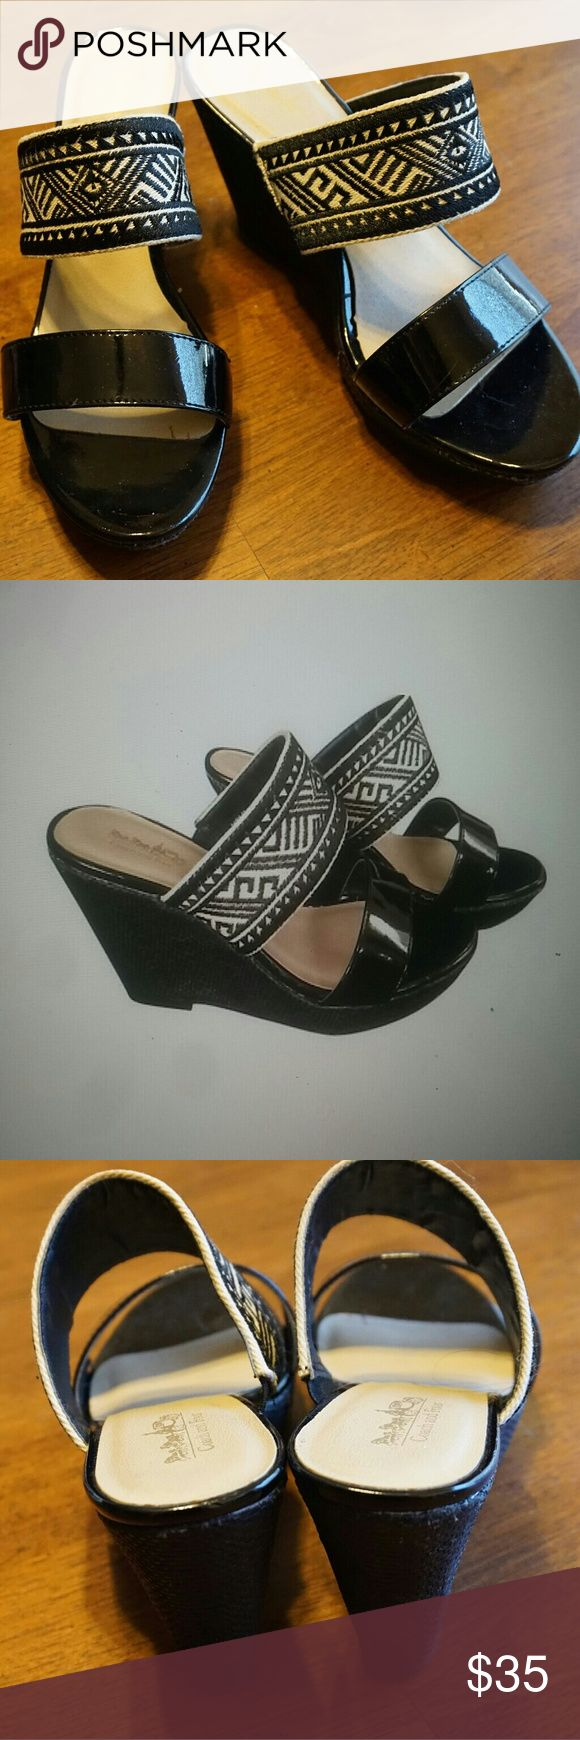 Coach woven tribal strap black and white wedges Super fun print and comfortable to wear. Wish they were my size, light wear on the sole. Coach Shoes Wedges